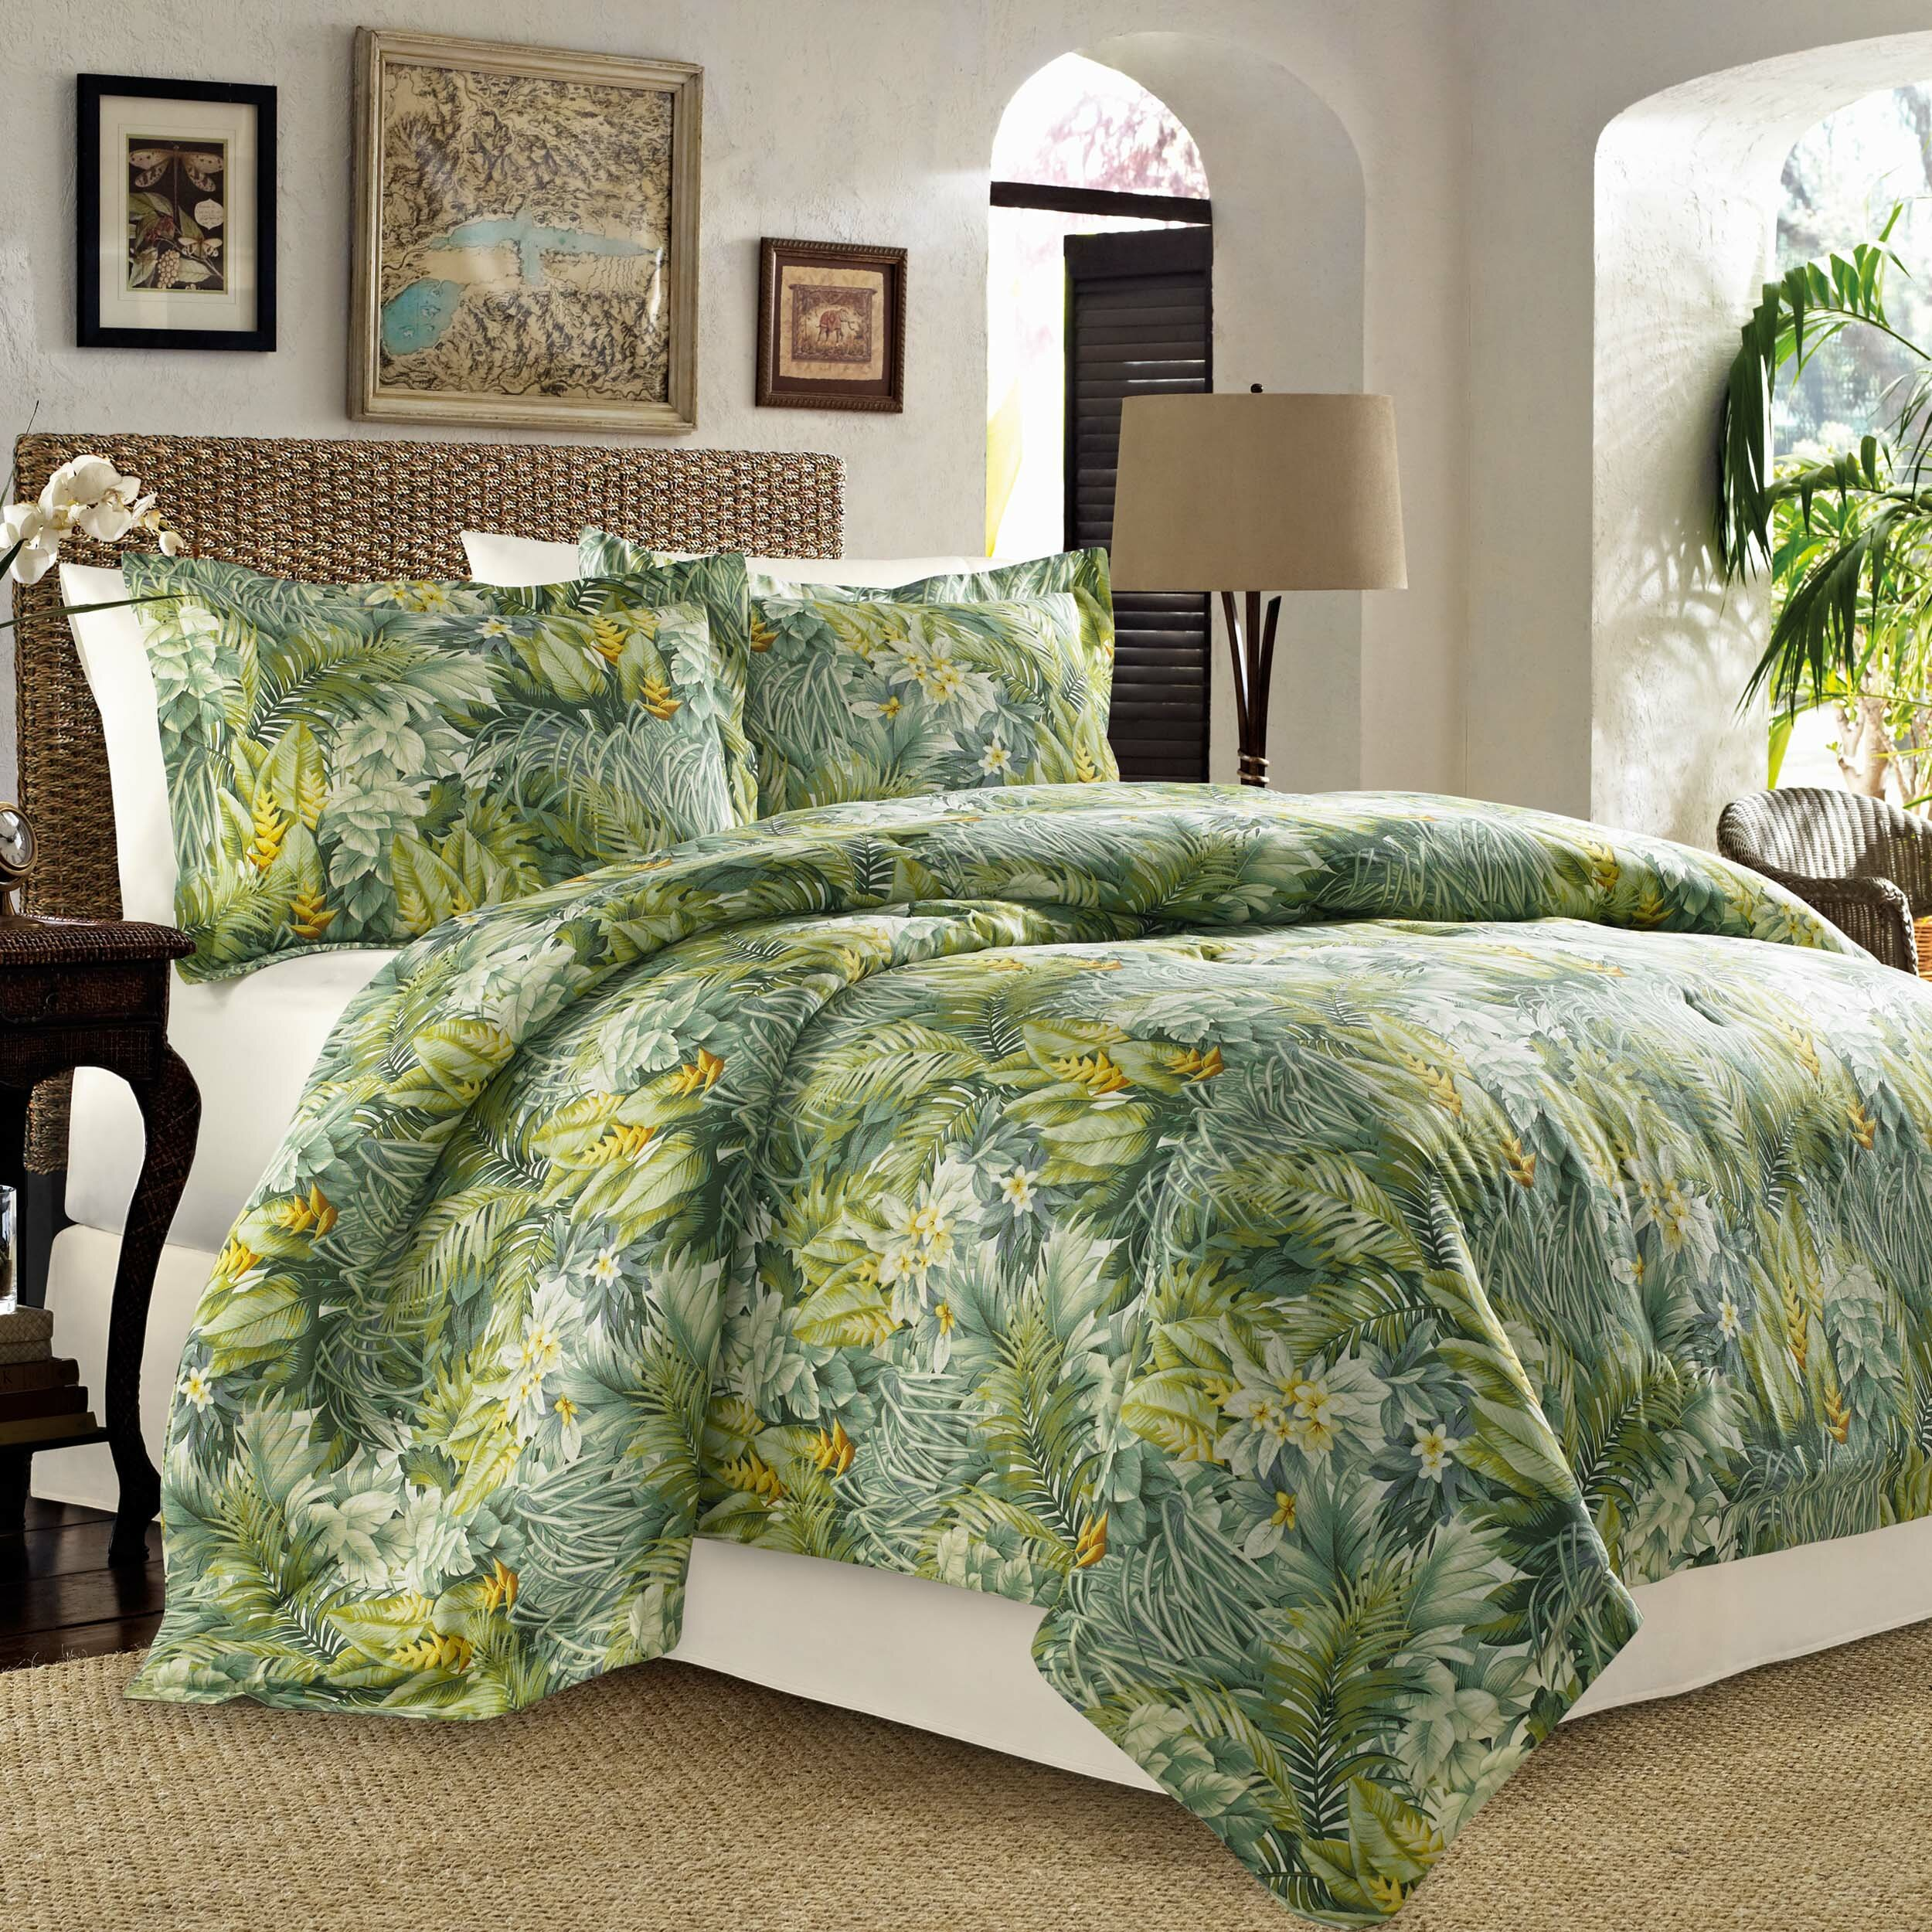 Tommy bahama bedding cuba cabana duvet cover collection Tommy bahama bedding